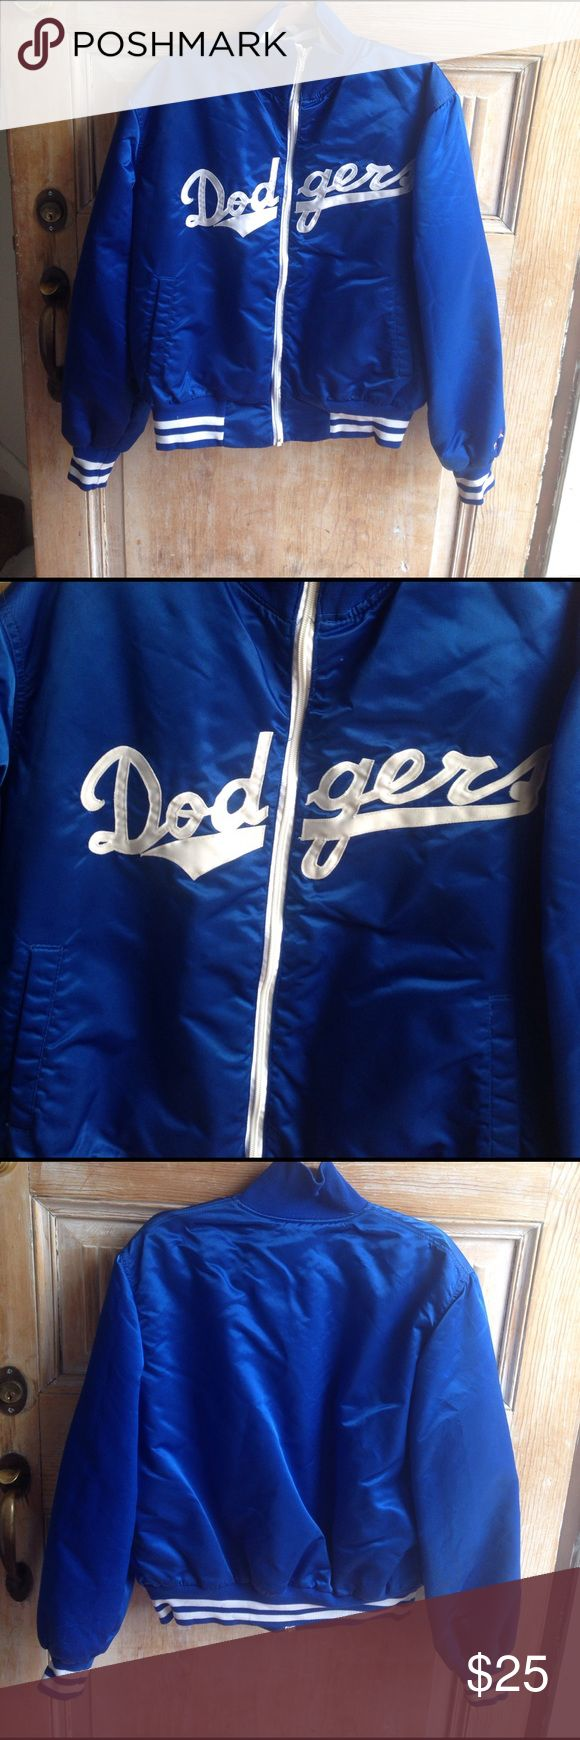 Vintage Dodgers Jacket Size Large Please view all photos. Some stains as shown in photo. Made in the USA dodgers Jackets & Coats Bomber & Varsity